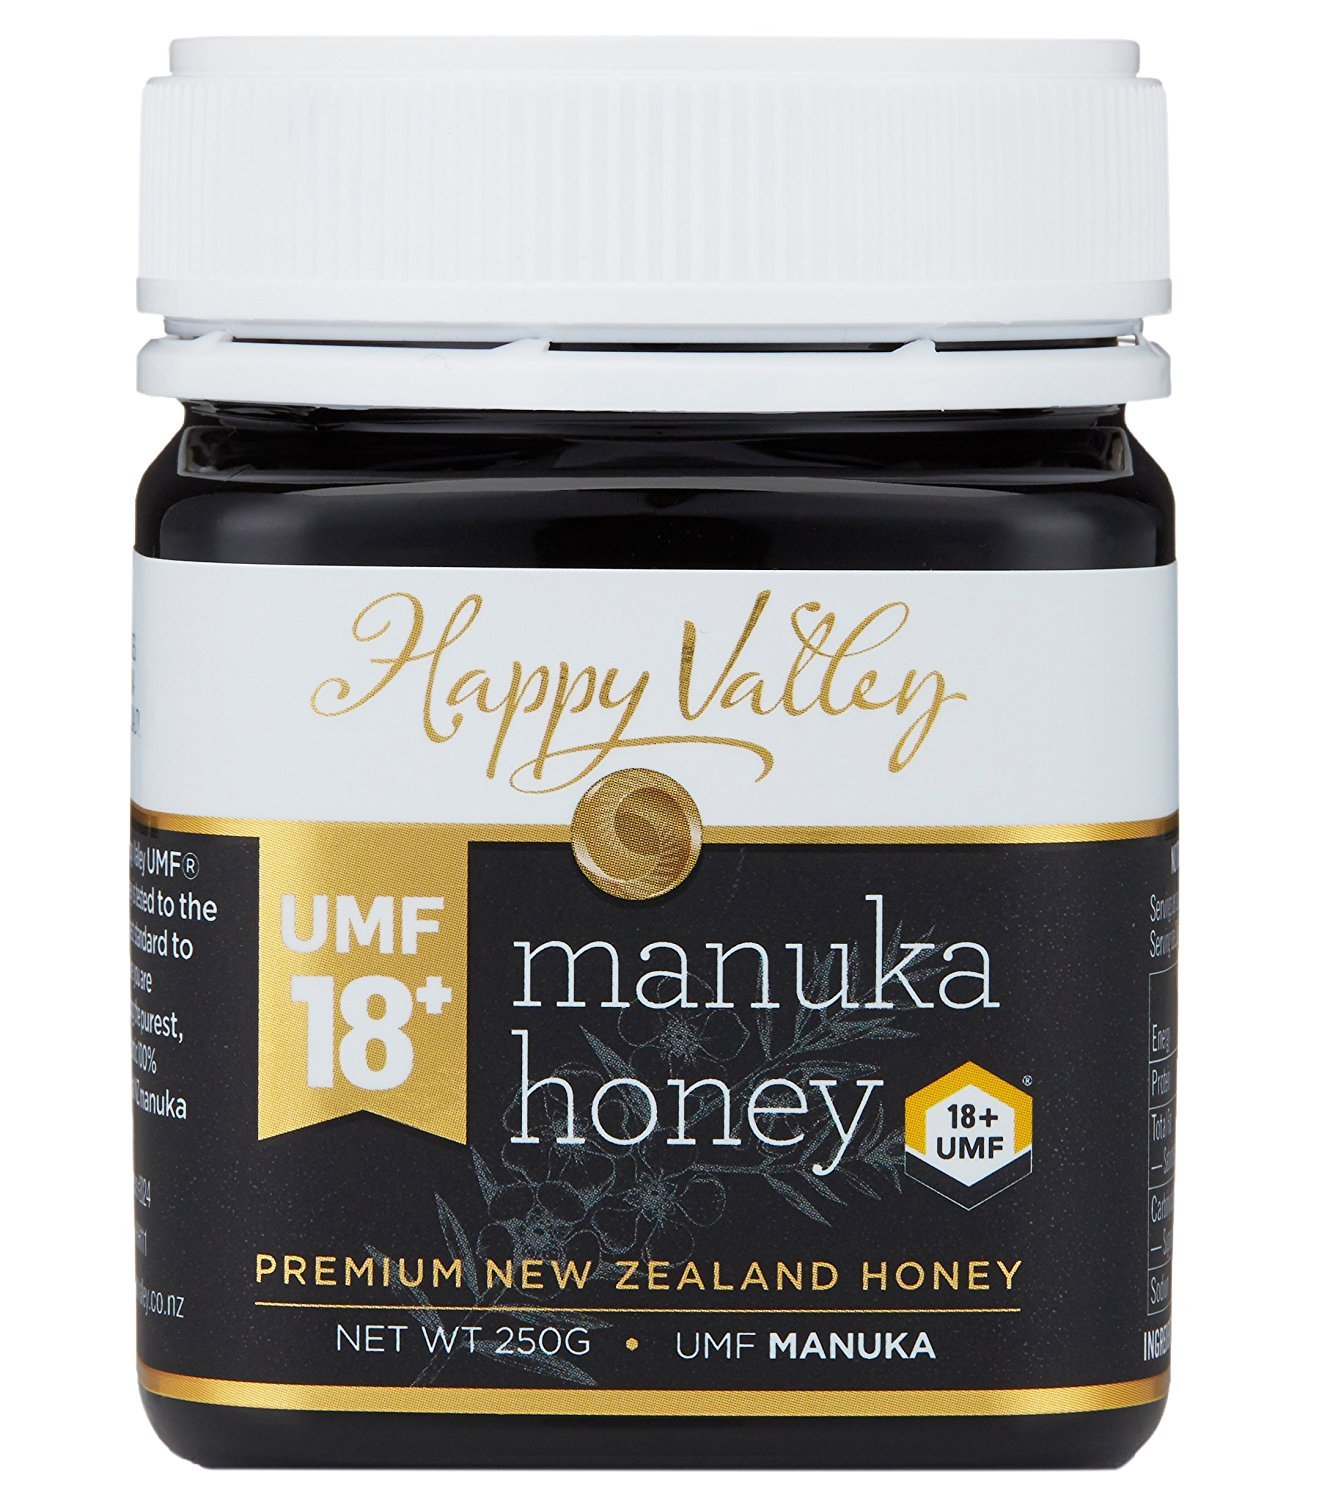 Happy Valley Manuka Honey UMF 18+